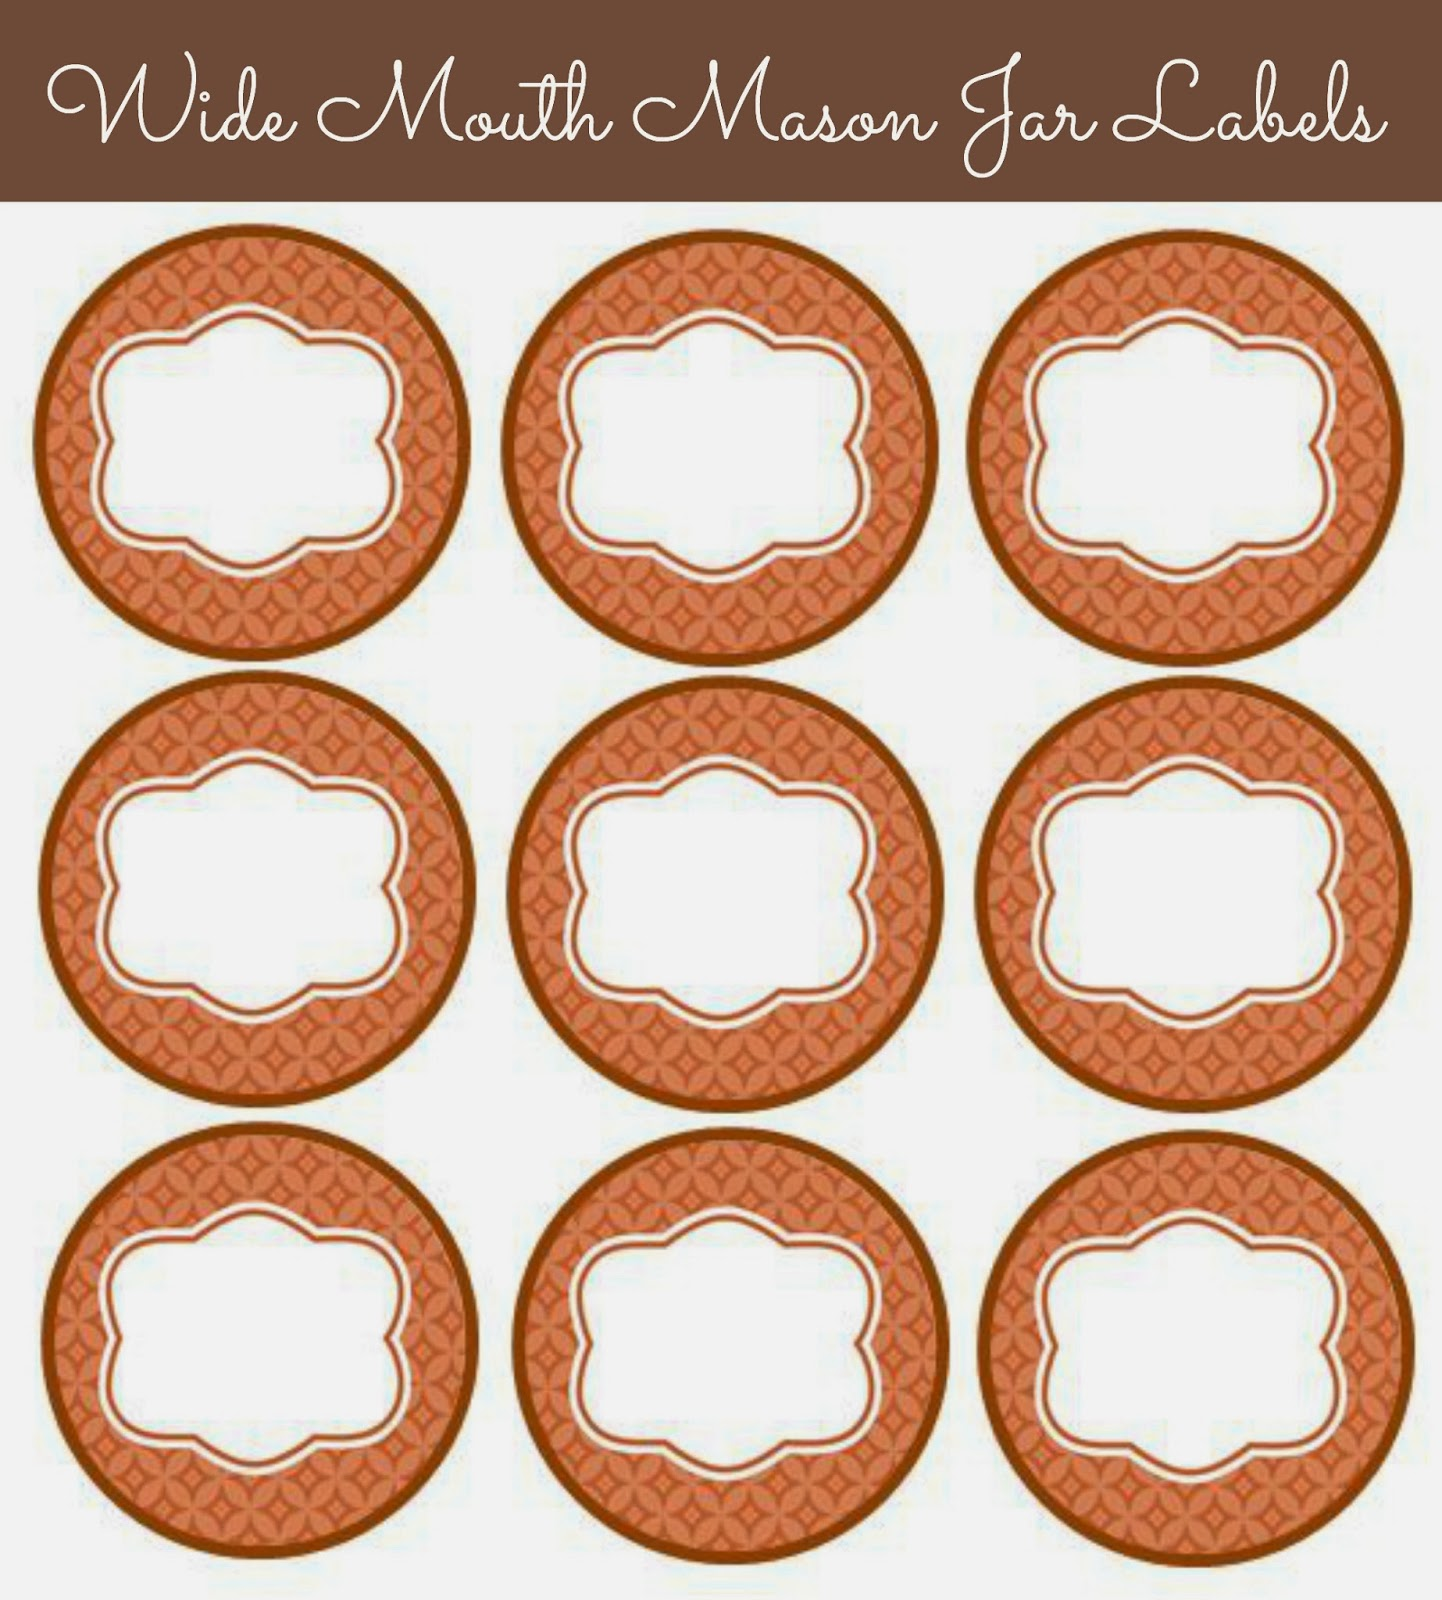 image about Free Printable Mason Jar Lid Labels named 56 Lovely Mason Jar Labels